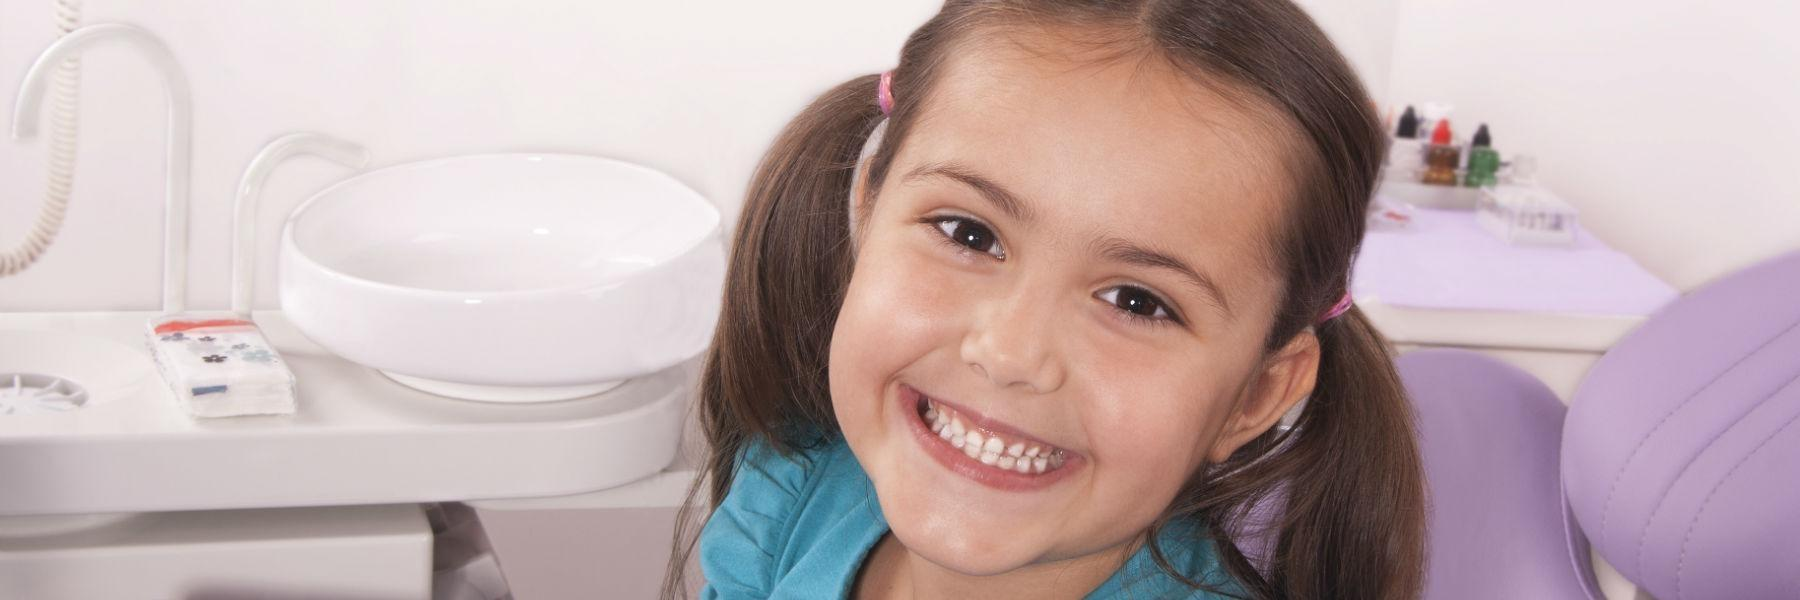 Little girl sitting in dental chair smiling | Dentist Greeley CO